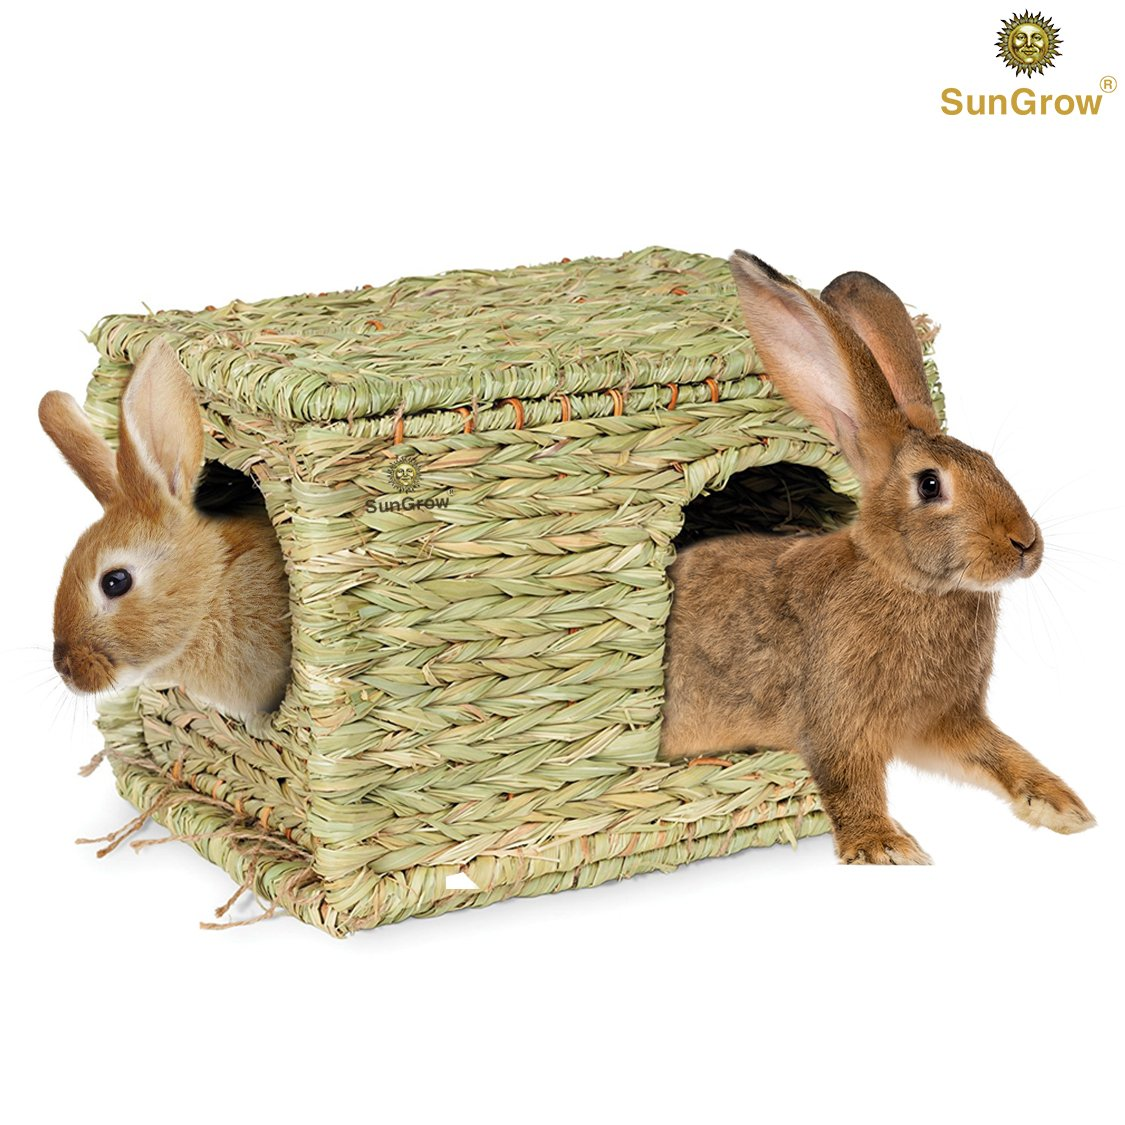 SunGrow Folding Woven Grass House for Rabbits, Guinea Pigs, Bunnies : Provides Comfort, Warmth & Security by Satisfying Natural Instincts: Multi-Utility, Edible, Non-Toxic, Chew Toy for Small Animals by SunGrow (Image #1)